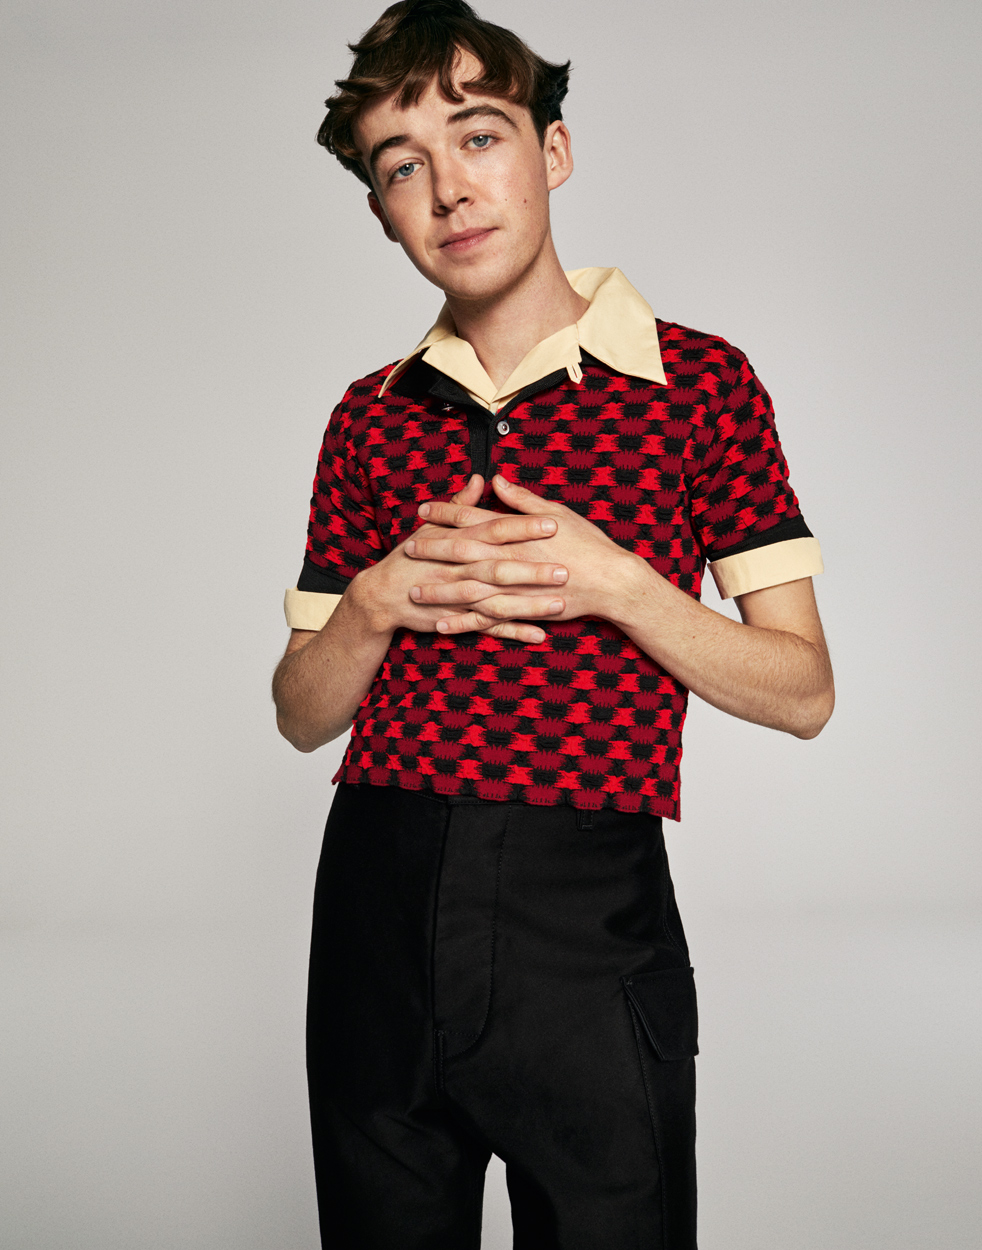 Celebrity Photographer Michael Schwartz: Alex Lawther for Tatler Magazine